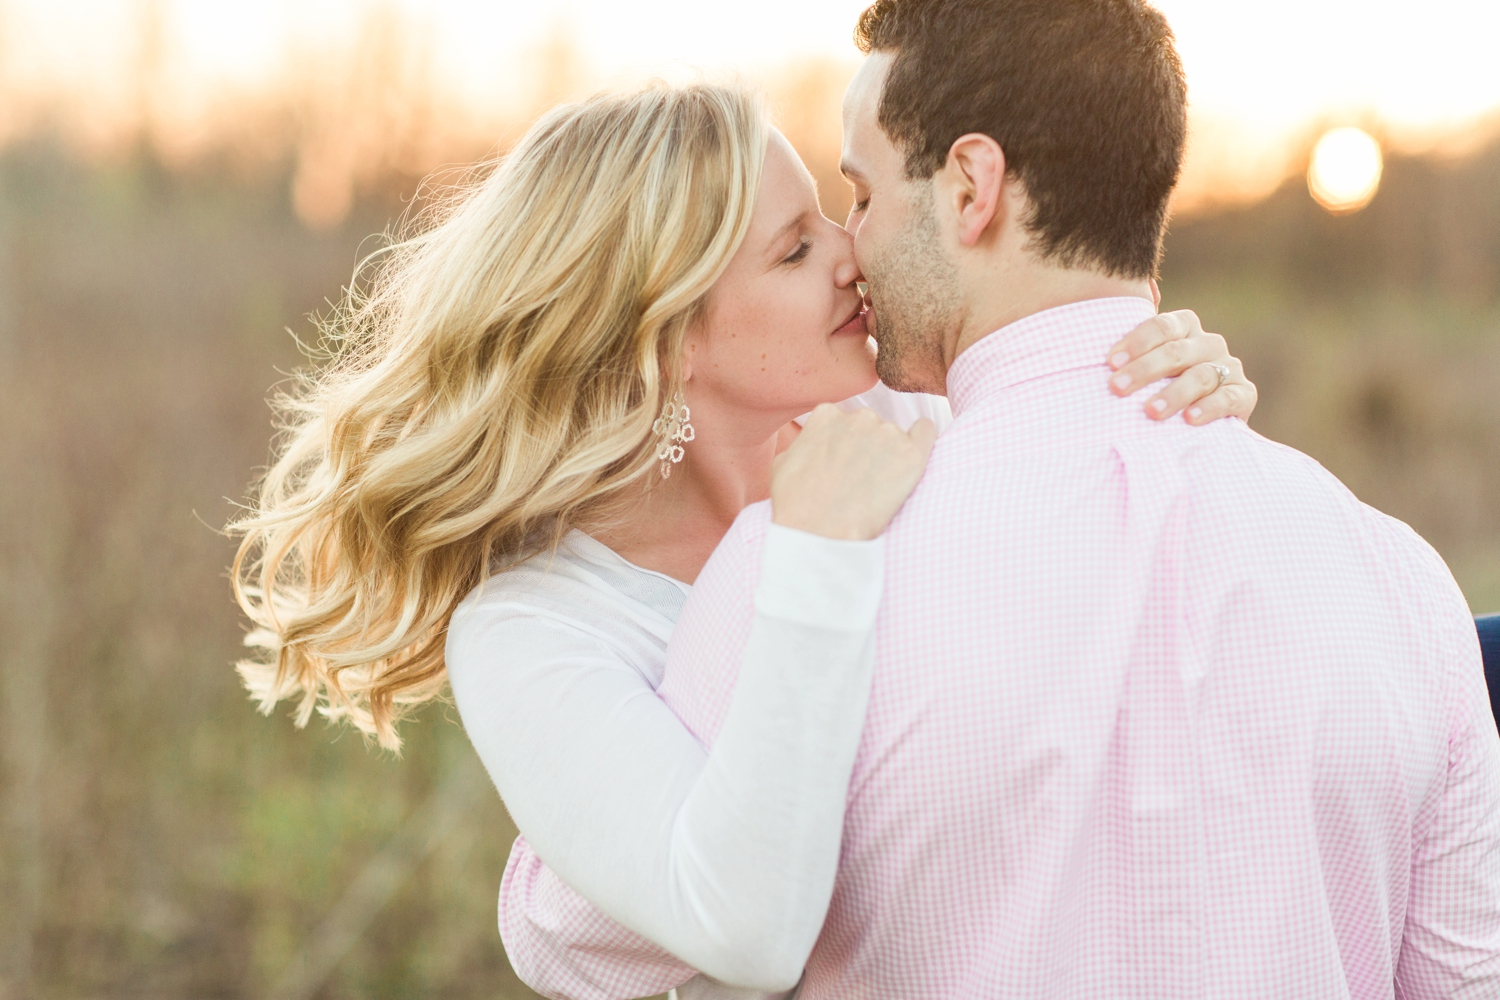 indianapolis_wedding_photographer_golden_hour_engagement_chloe_luka_photography_6148.jpg